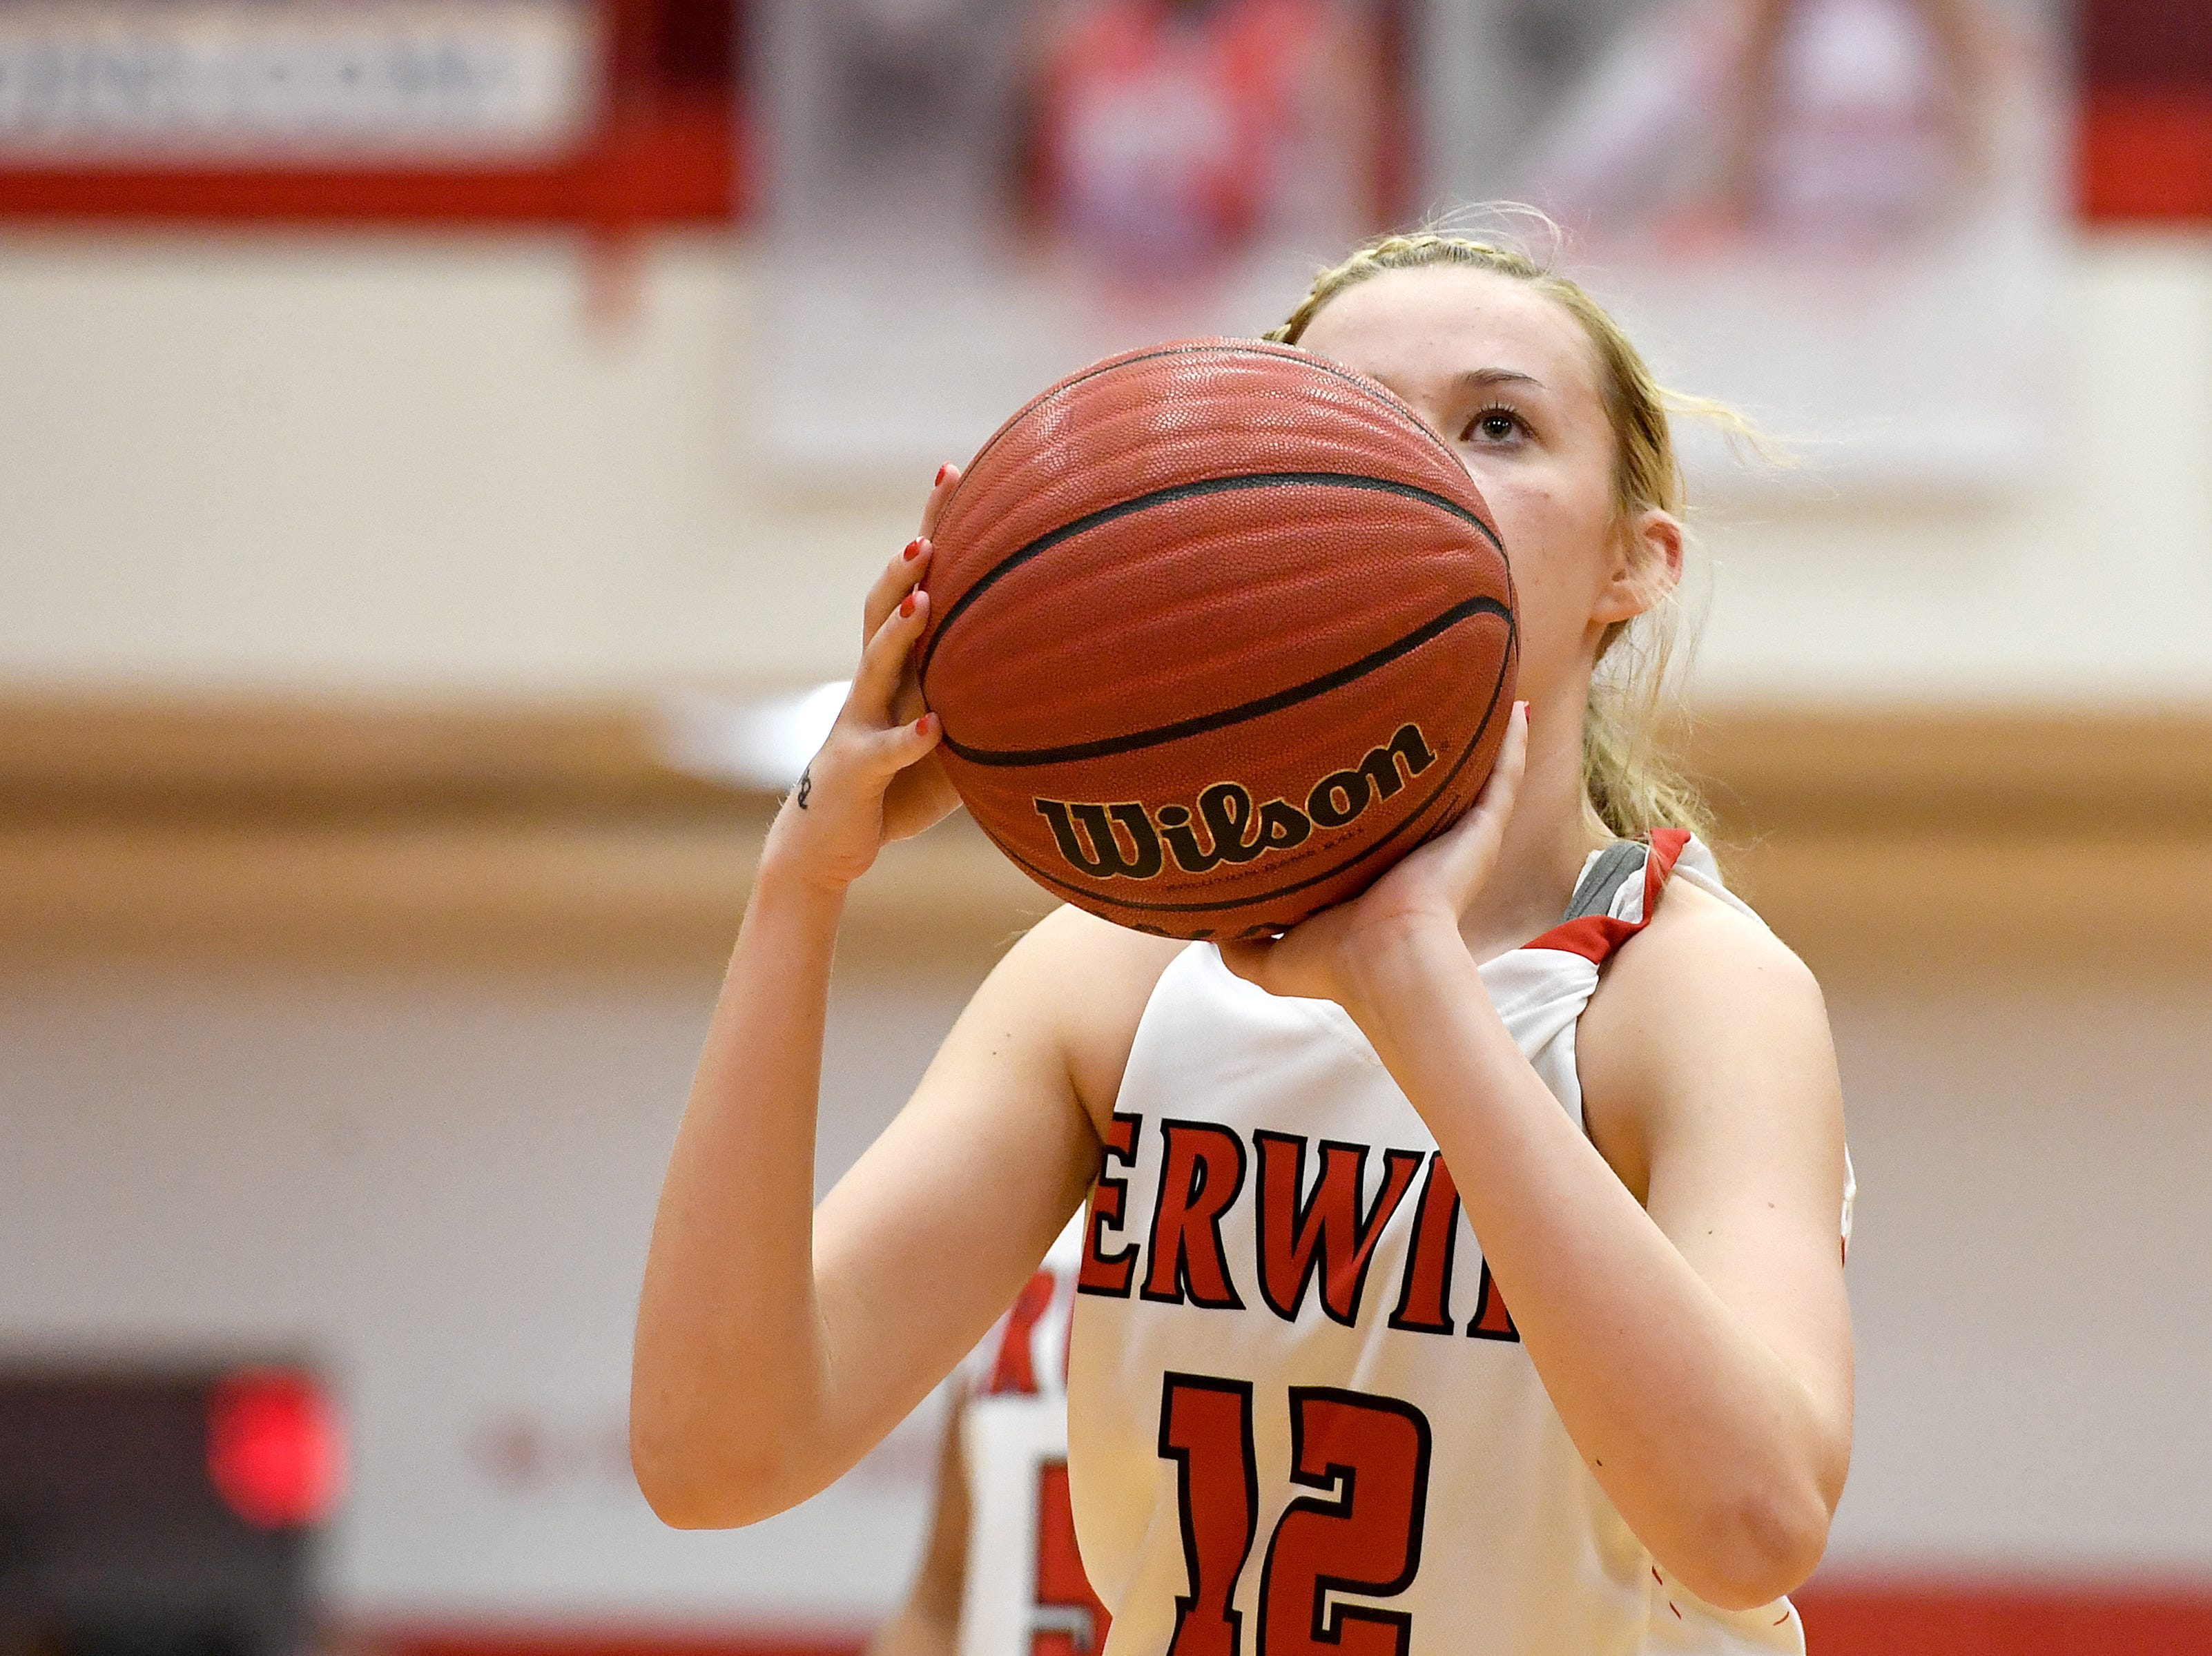 Erwin took on Enka at Erwin High School on Feb. 8, 2019. The Lady Warriors defeated the Sugar Jets 68-46 to claim the WMAC regular season title.